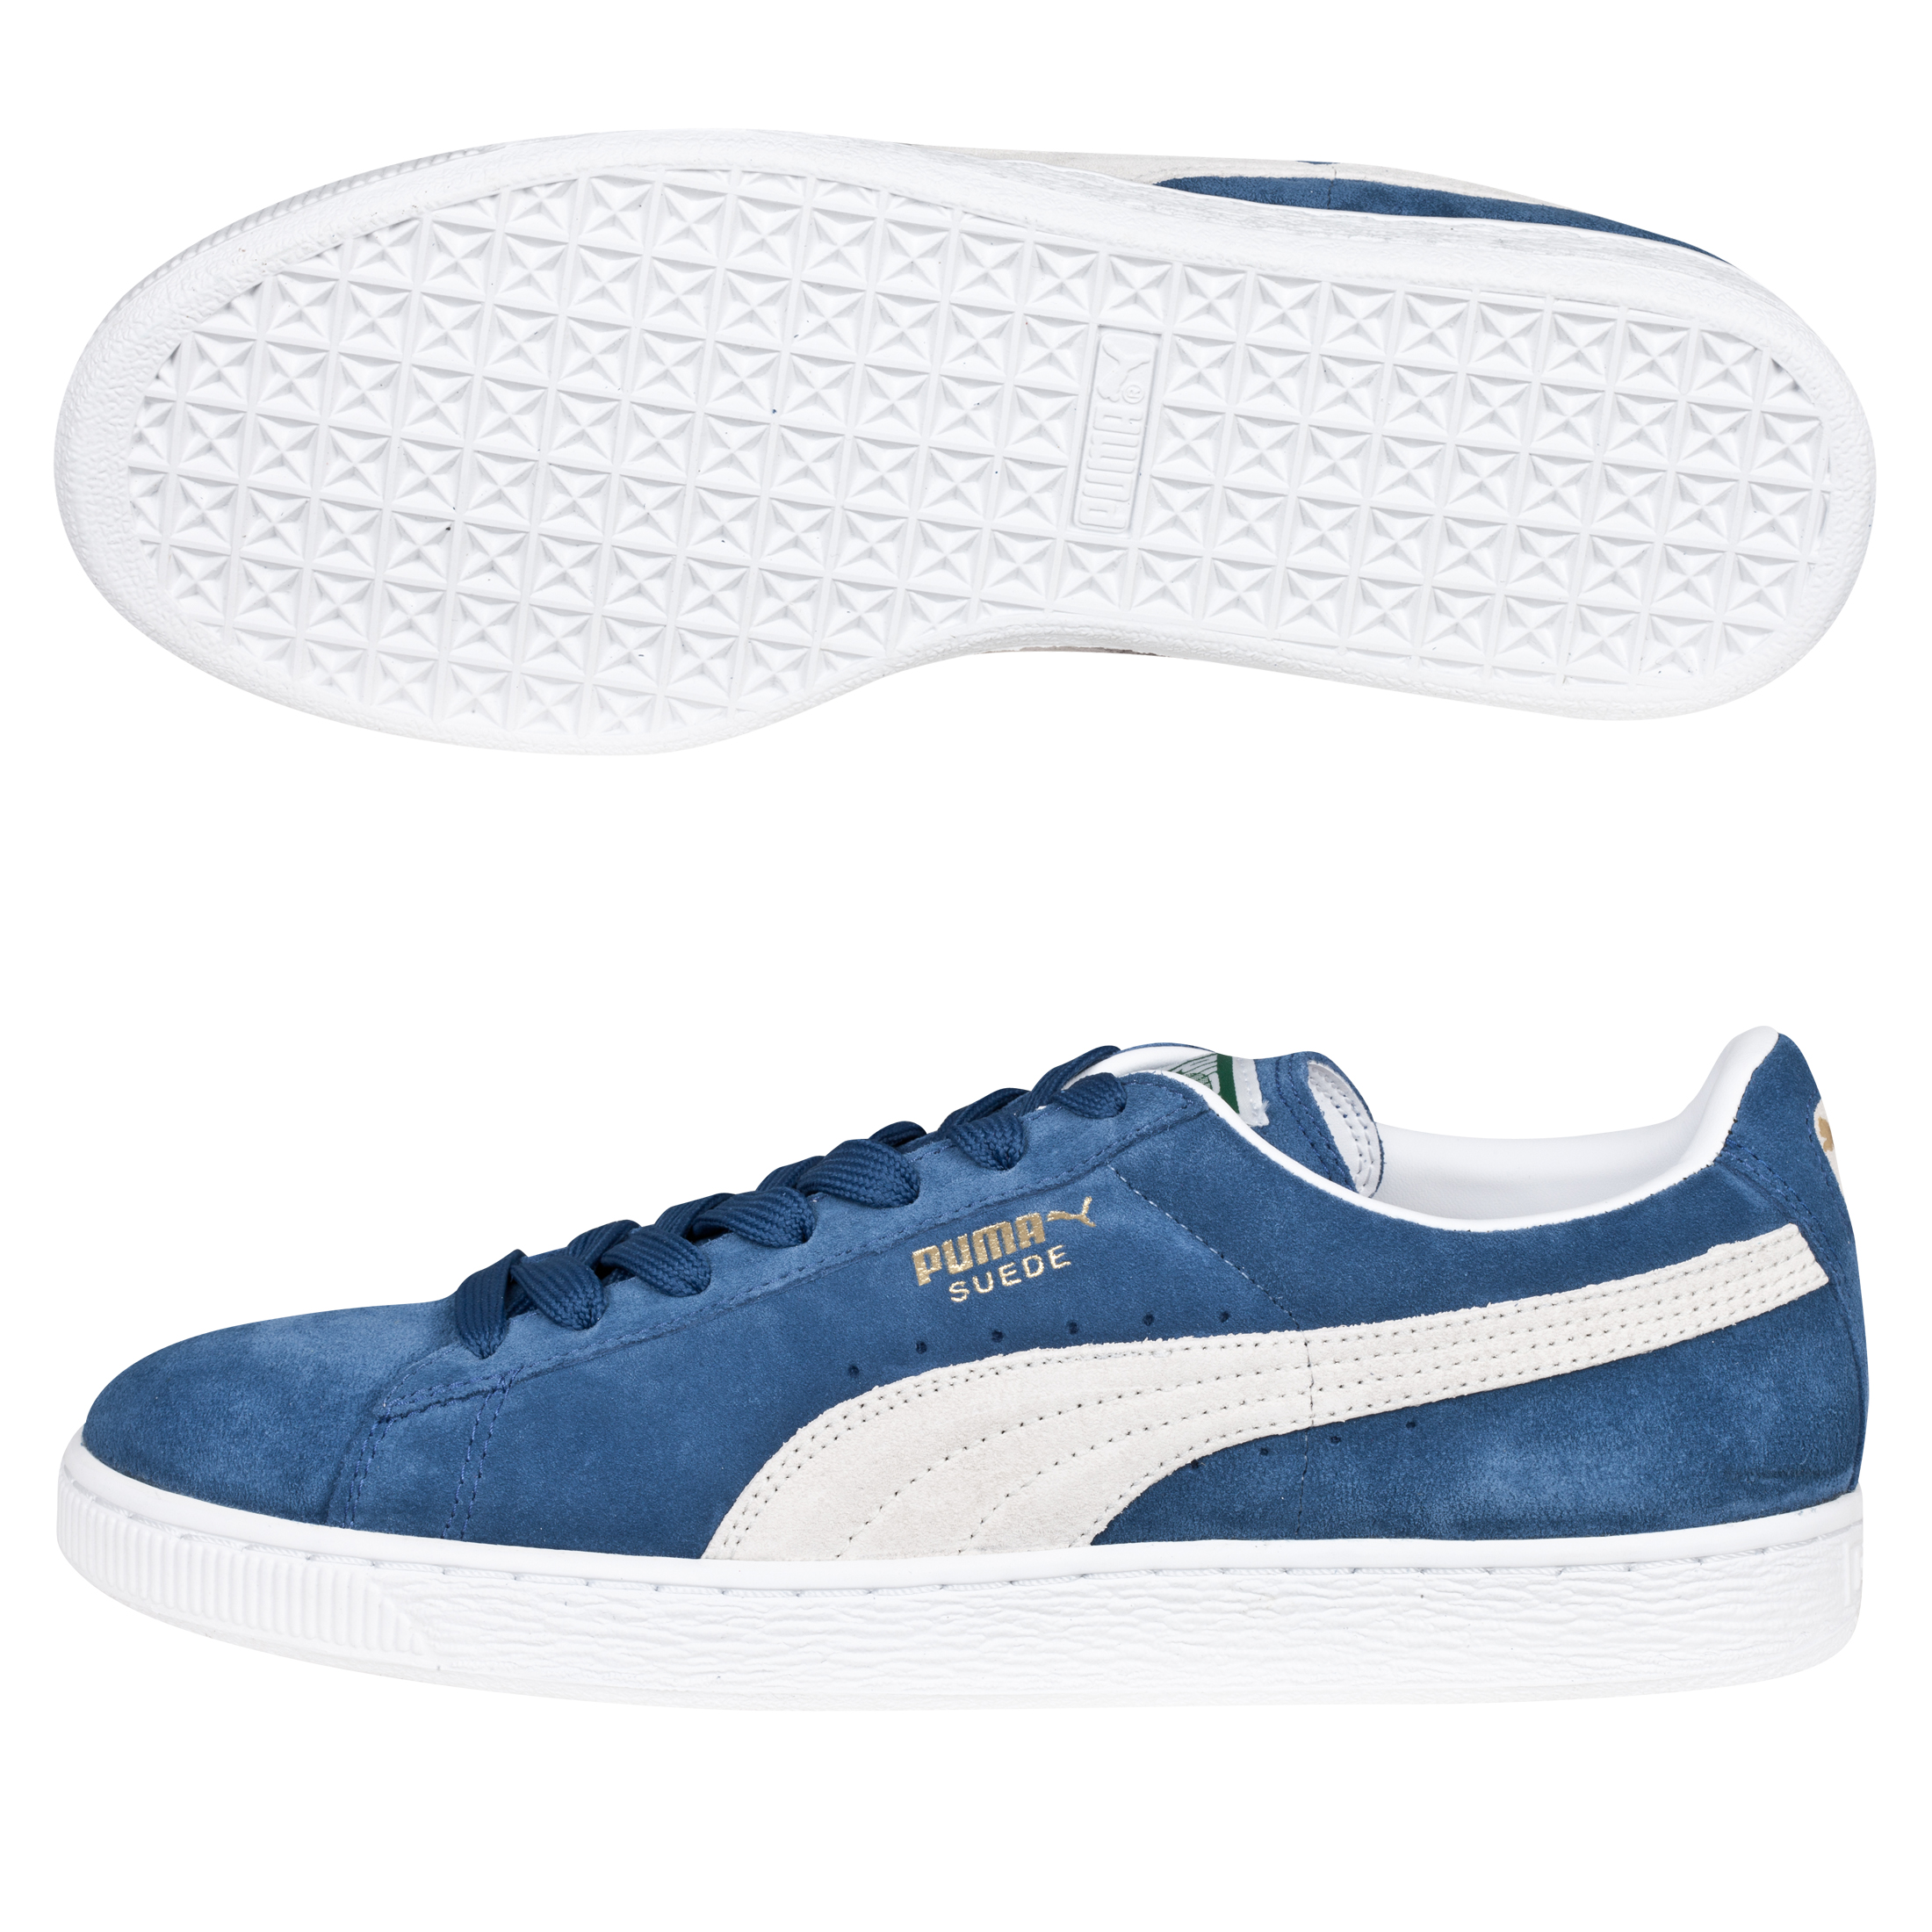 Puma Suede Classic+ - Ensign Blue/White